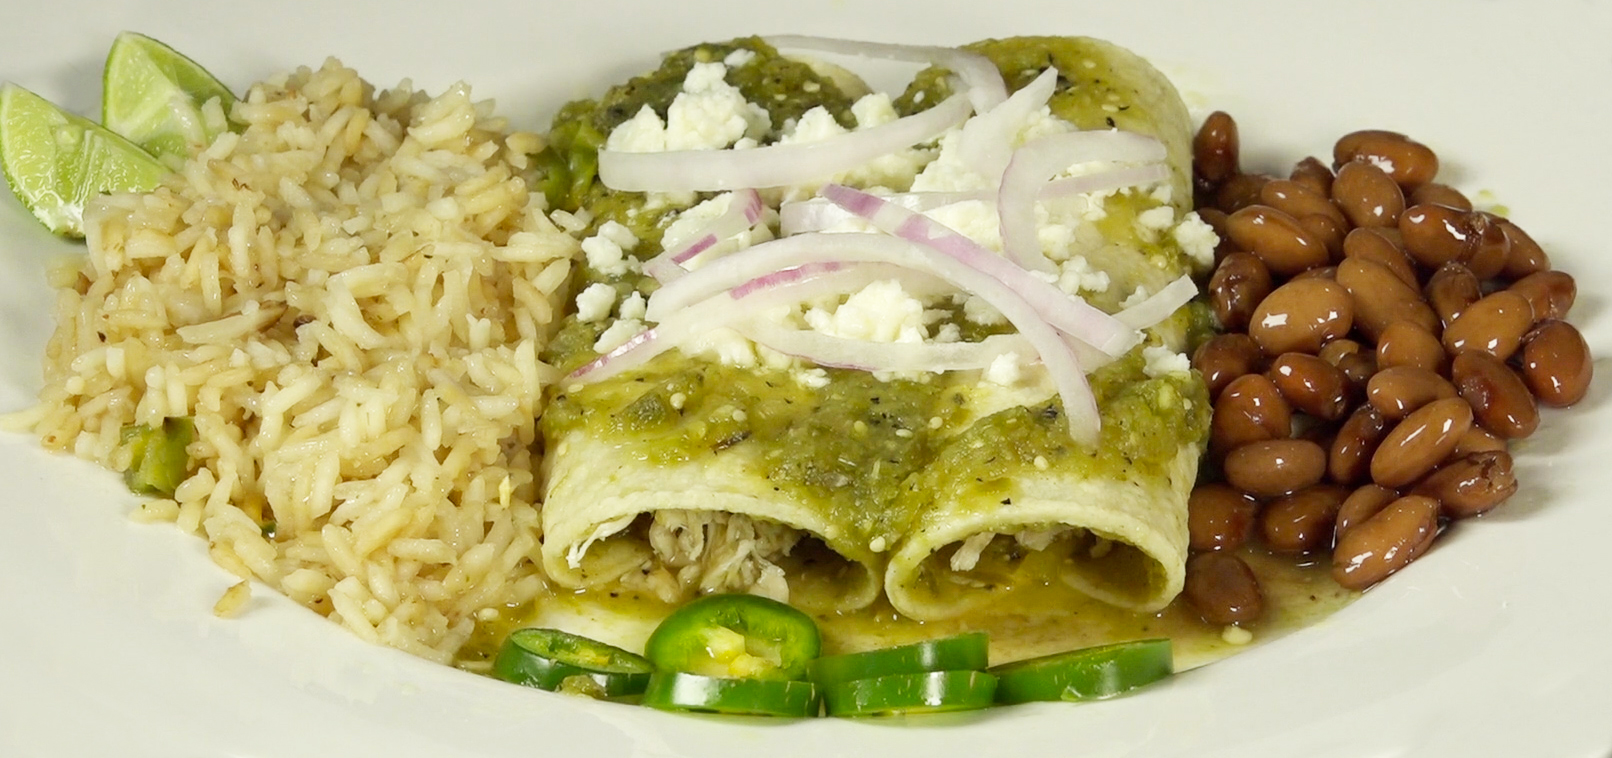 enchiladas-verdes-and-jalepeno-rice2.jpg